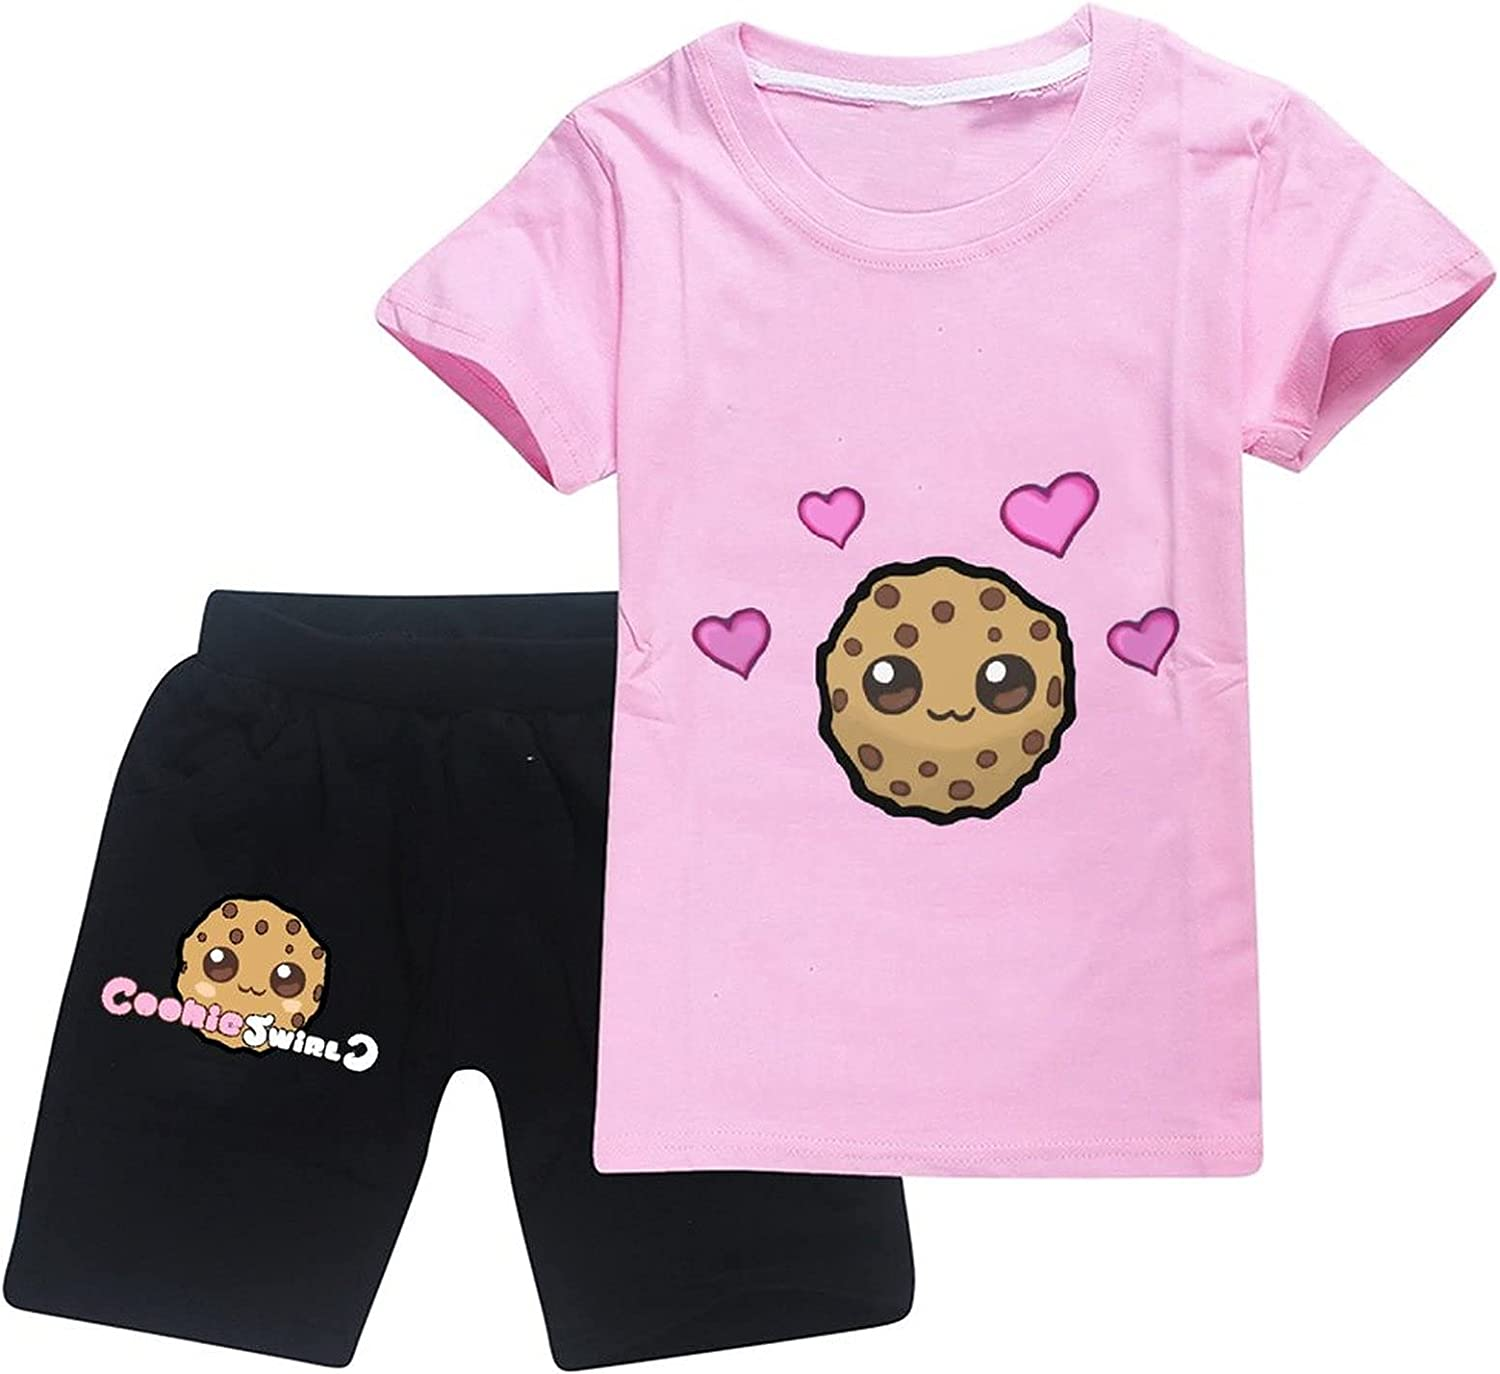 Cookie Swirl C Toddler Boy Cotton Summer Short Sleeve T-Shirt and Shorts Outfit Set